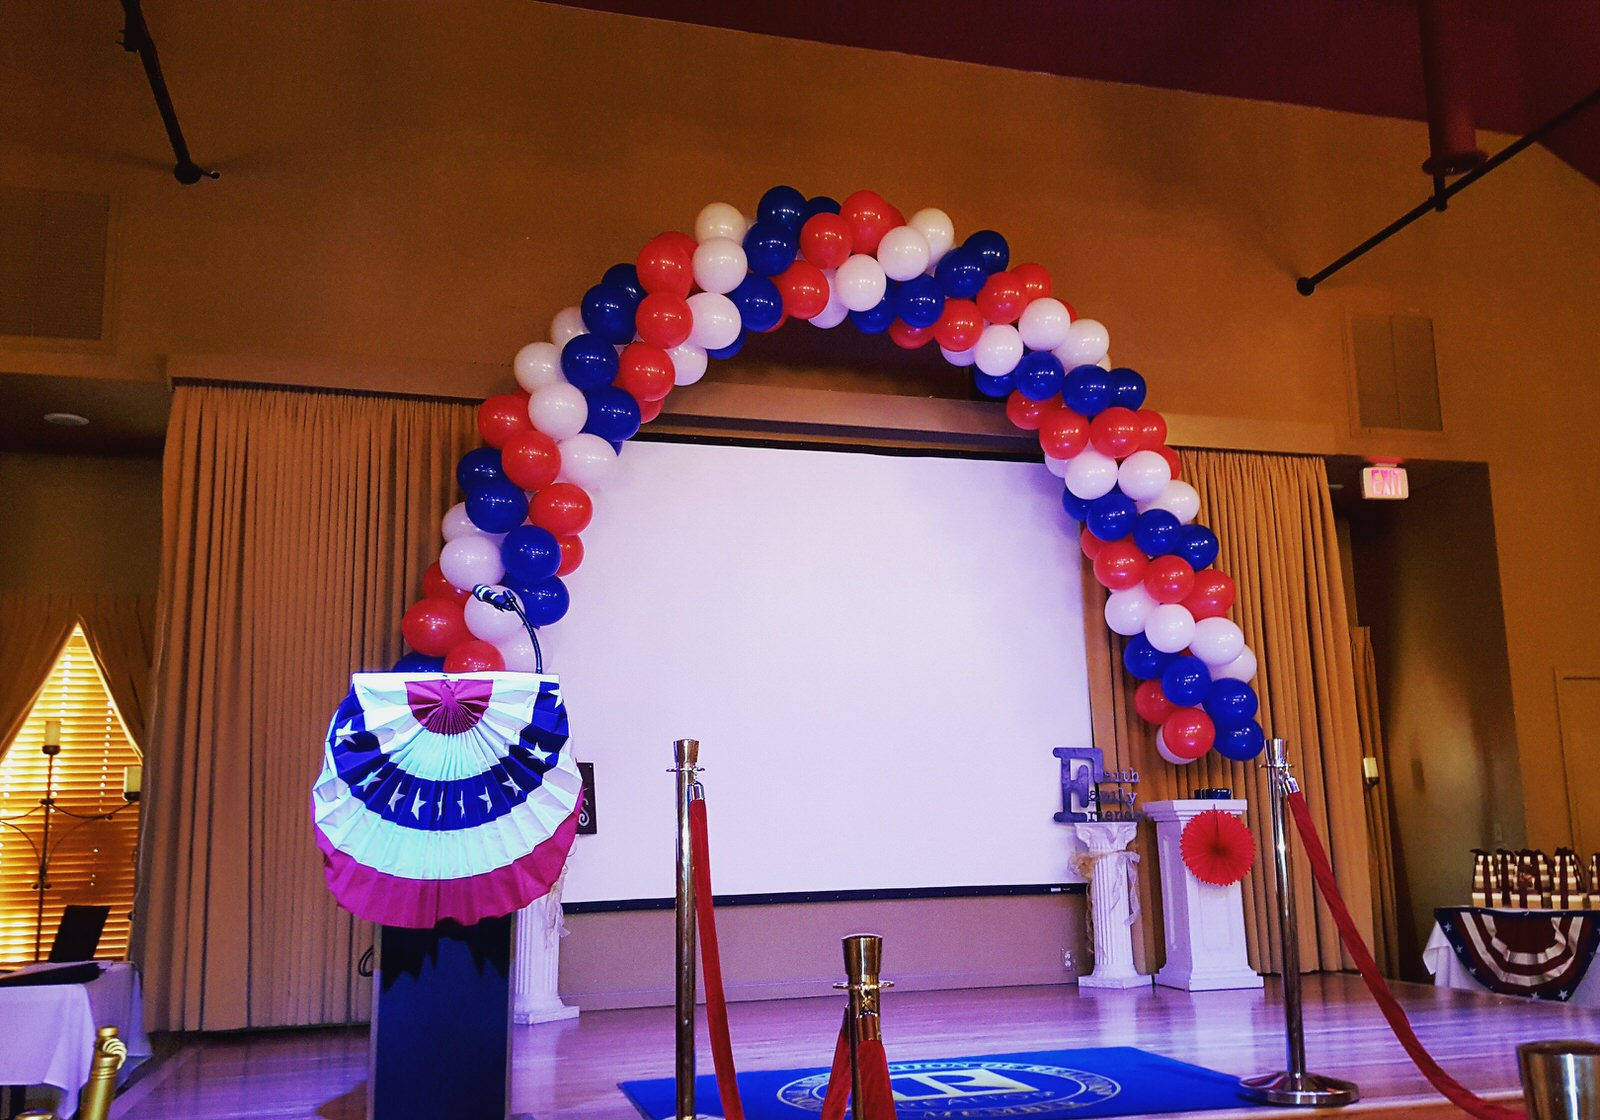 election themed balloon arch.jpg